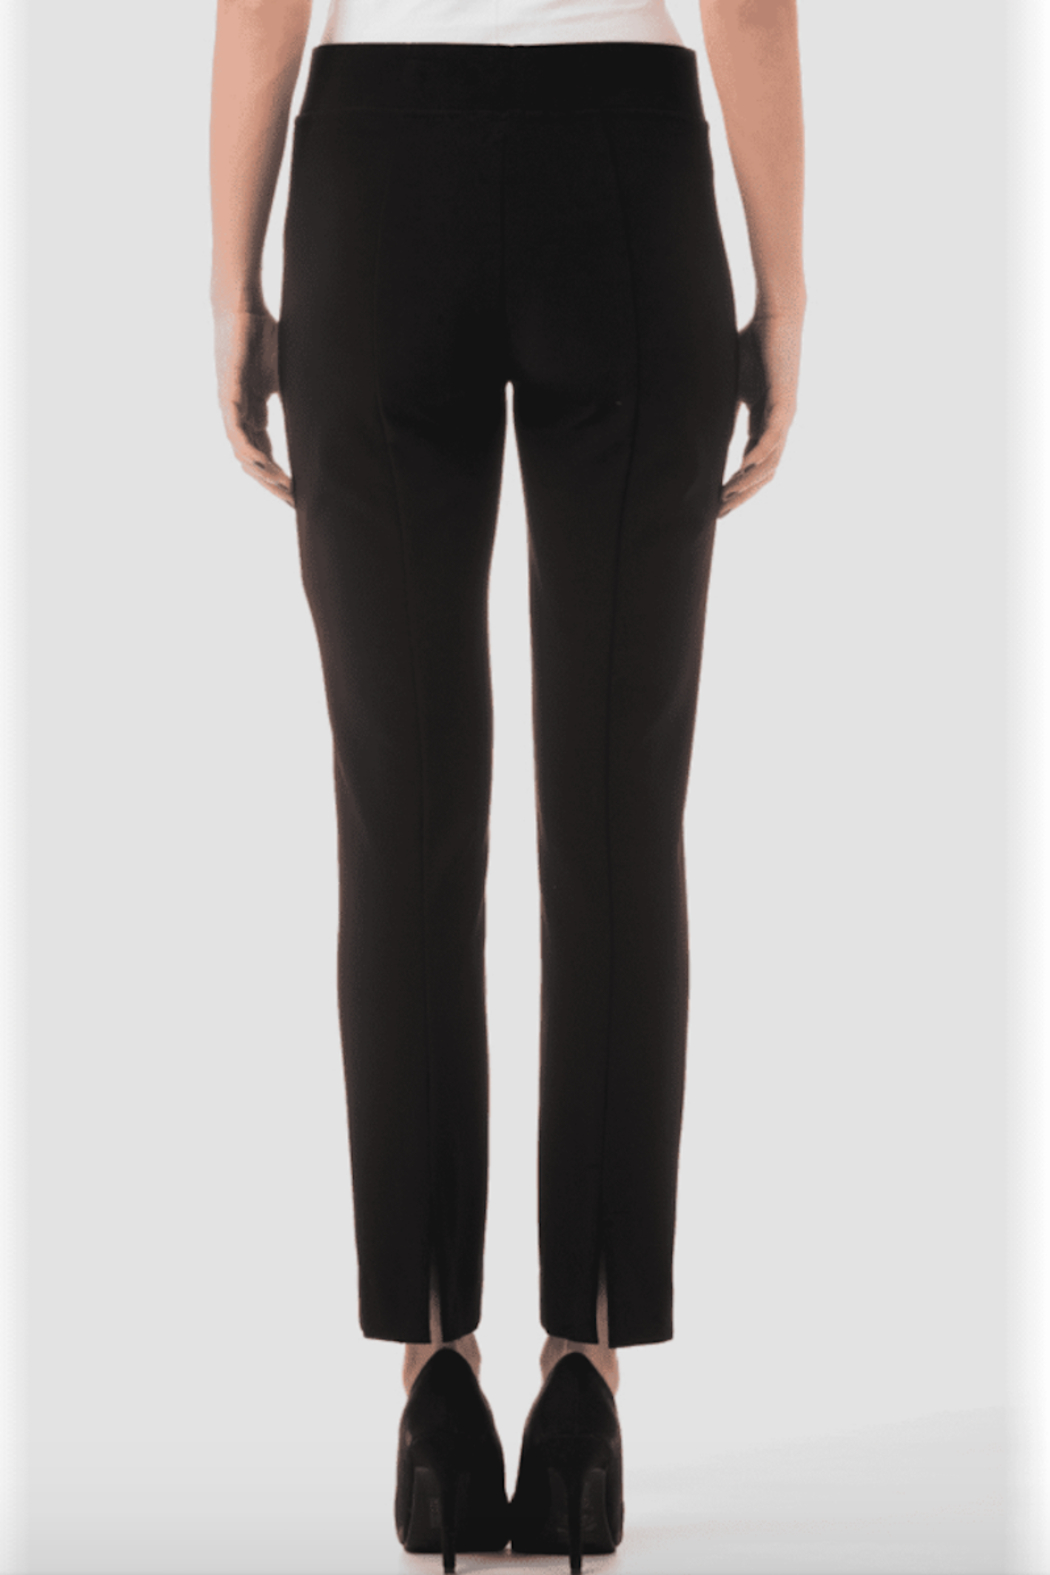 Joseph Ribkoff  The Essential Pant, Black, Navy, & White - Front Full Image